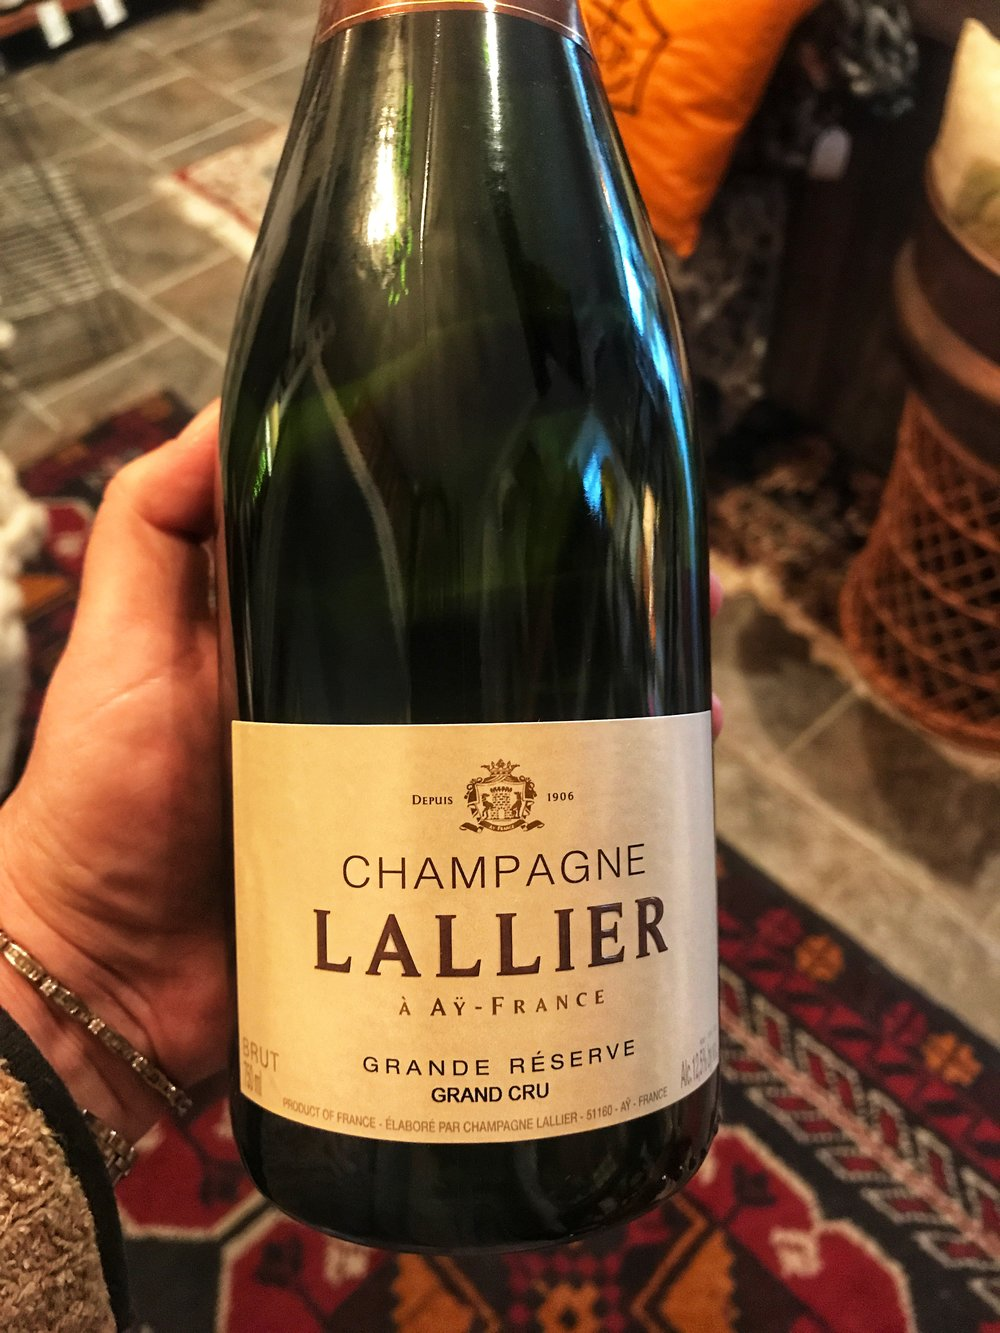 "NV Champagne Lallier ""Grande Réserve"" Grand Cru: (Reg. 57.99/Sale 48.99) Made from 100% Grand Cru grapes, of which 65% Pinot Noir from Aÿ and Verzenay and 35% Chardonnay from Avize and Cramant, the Brut is an intoxicating blend of 70% of the most recent vintage with 30% reserve wine, matured 24 to 36 months in our cellars. With 9 g/L dosage and 3 to 5 months rest between disgorgement and shipping, the Lallier Brut features a fine golden-yellow color and delicate buttery brioche aromas with hints of apricot and crusty bread. With its creamy mouthfeel, incredible balance, and remarkable minerality, this Brut represents a truly remarkable value."